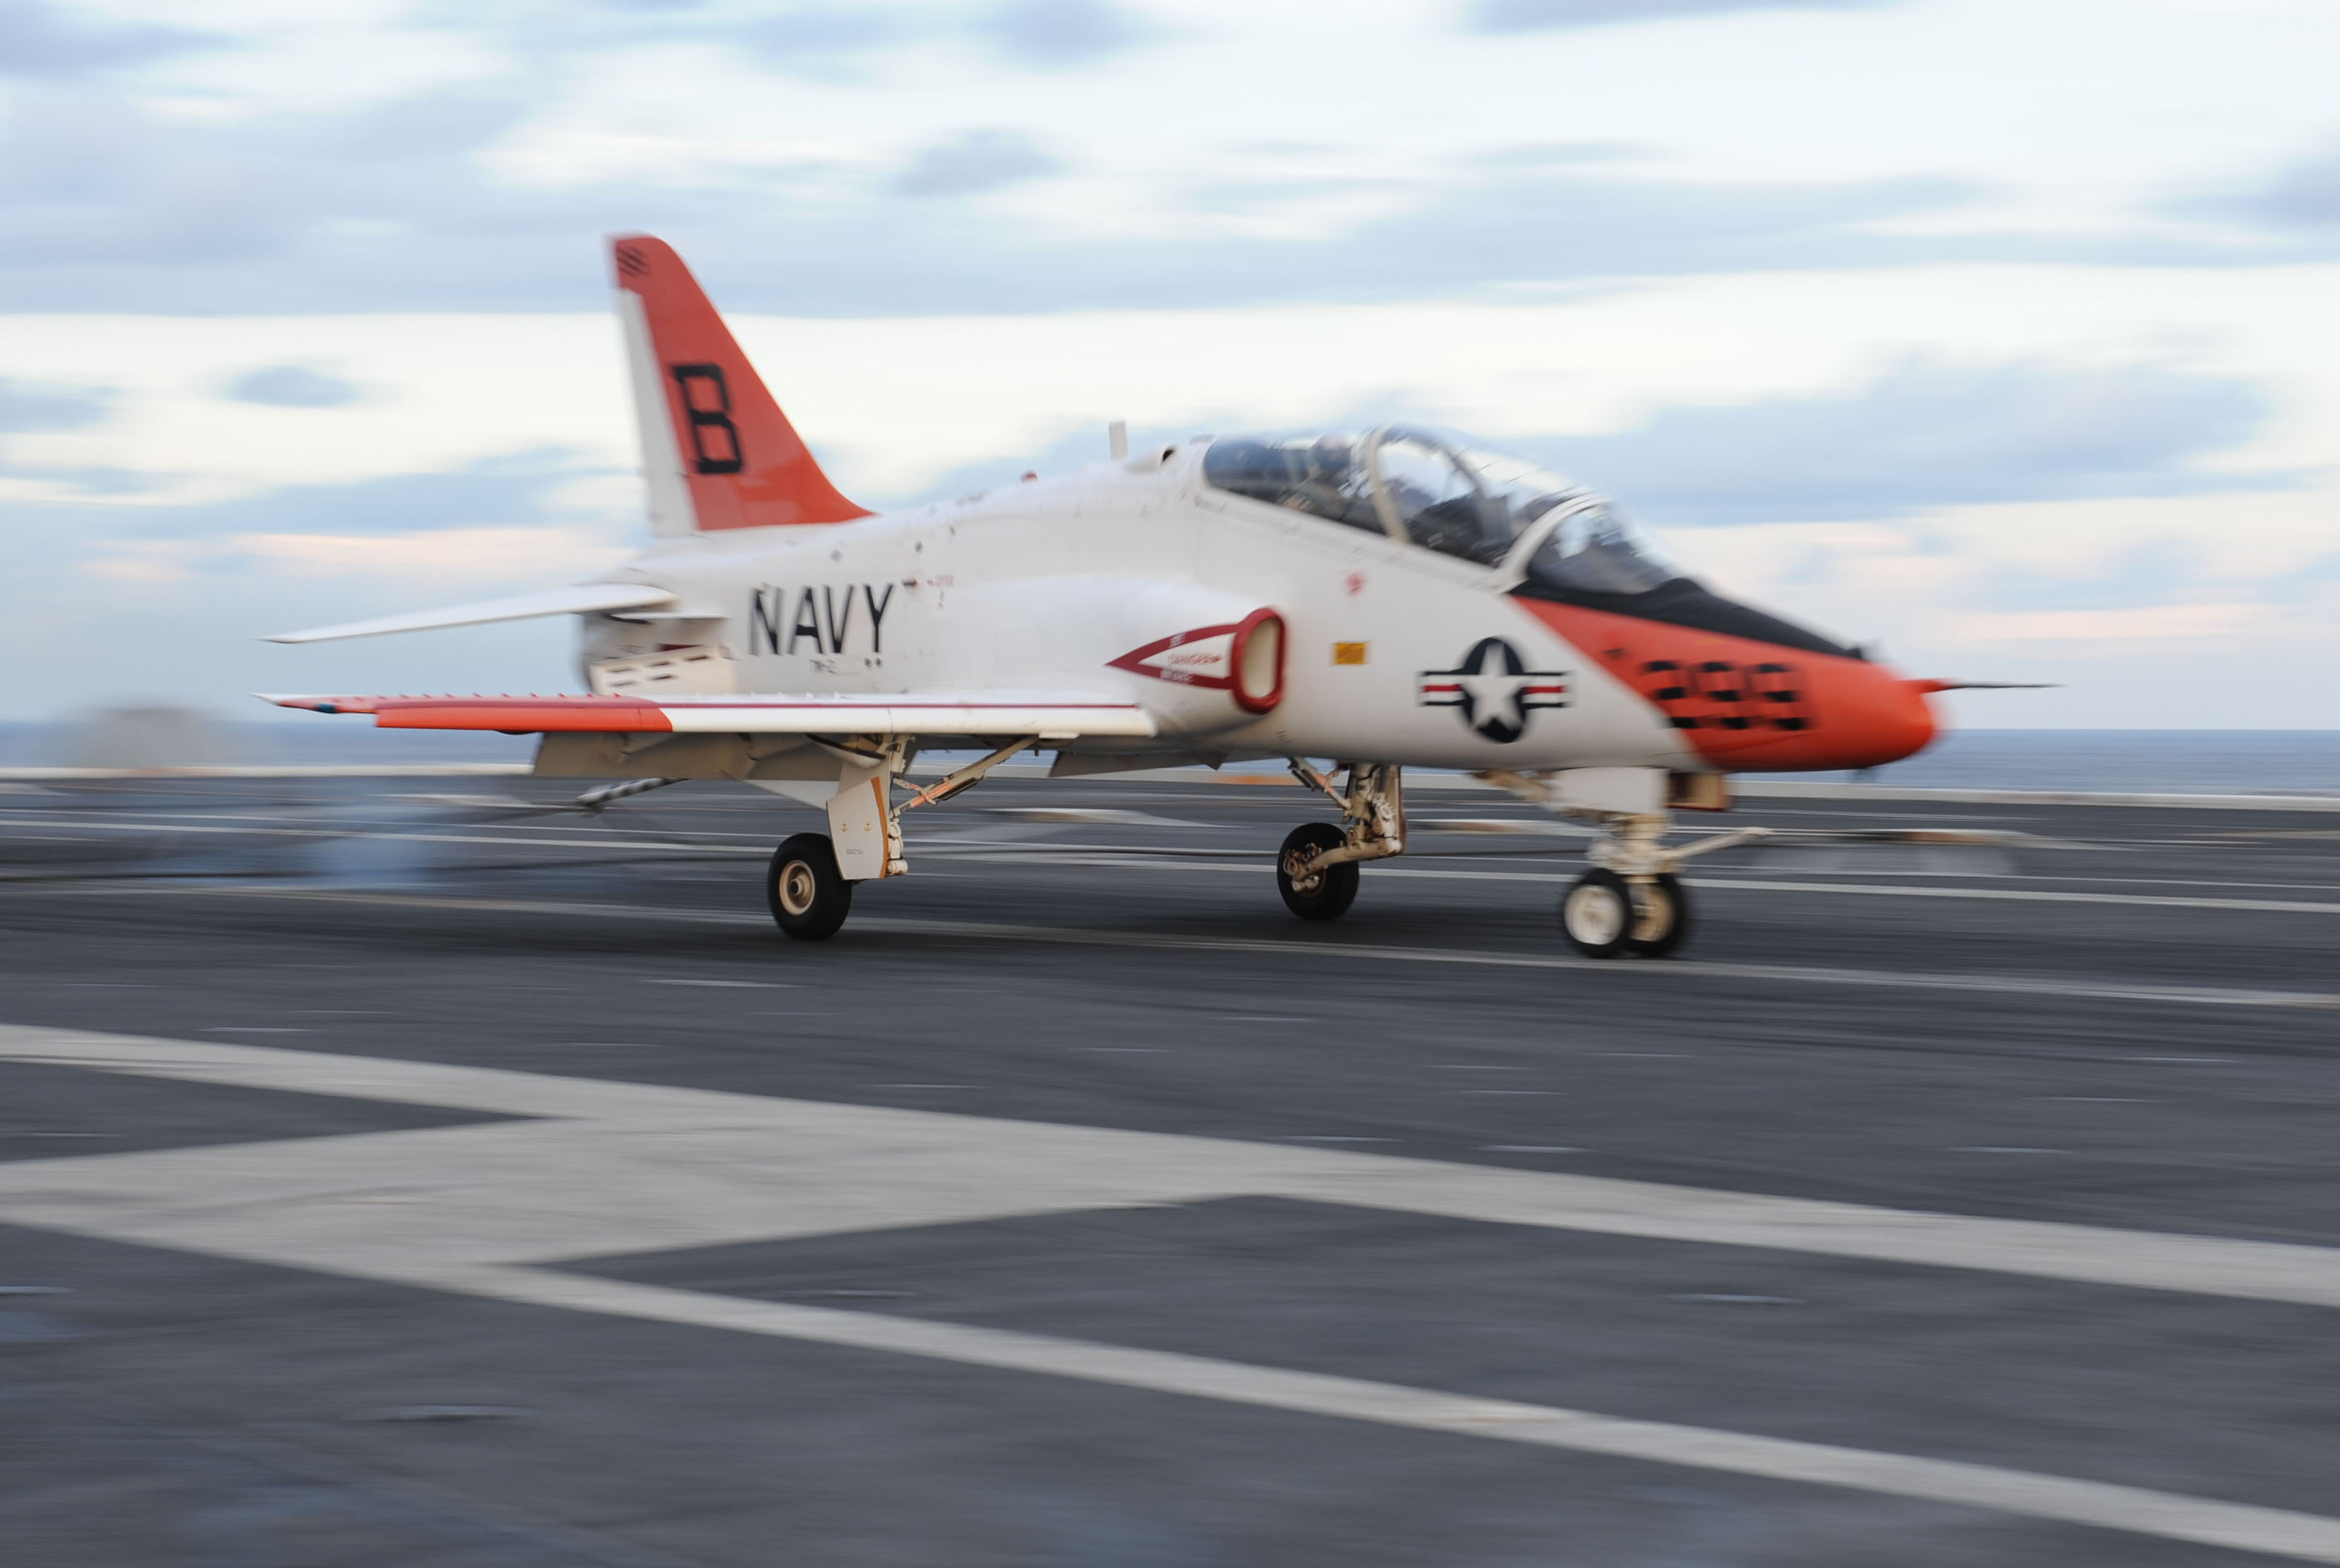 A T-45C Goshawk assigned to Training Air Wing 1 from Meridian, Miss., is launched from the flight deck of the U.S. Navy aircraft carrier Theodore Roosevelt. (MCSN Jennifer Fournier/U.S. Navy)